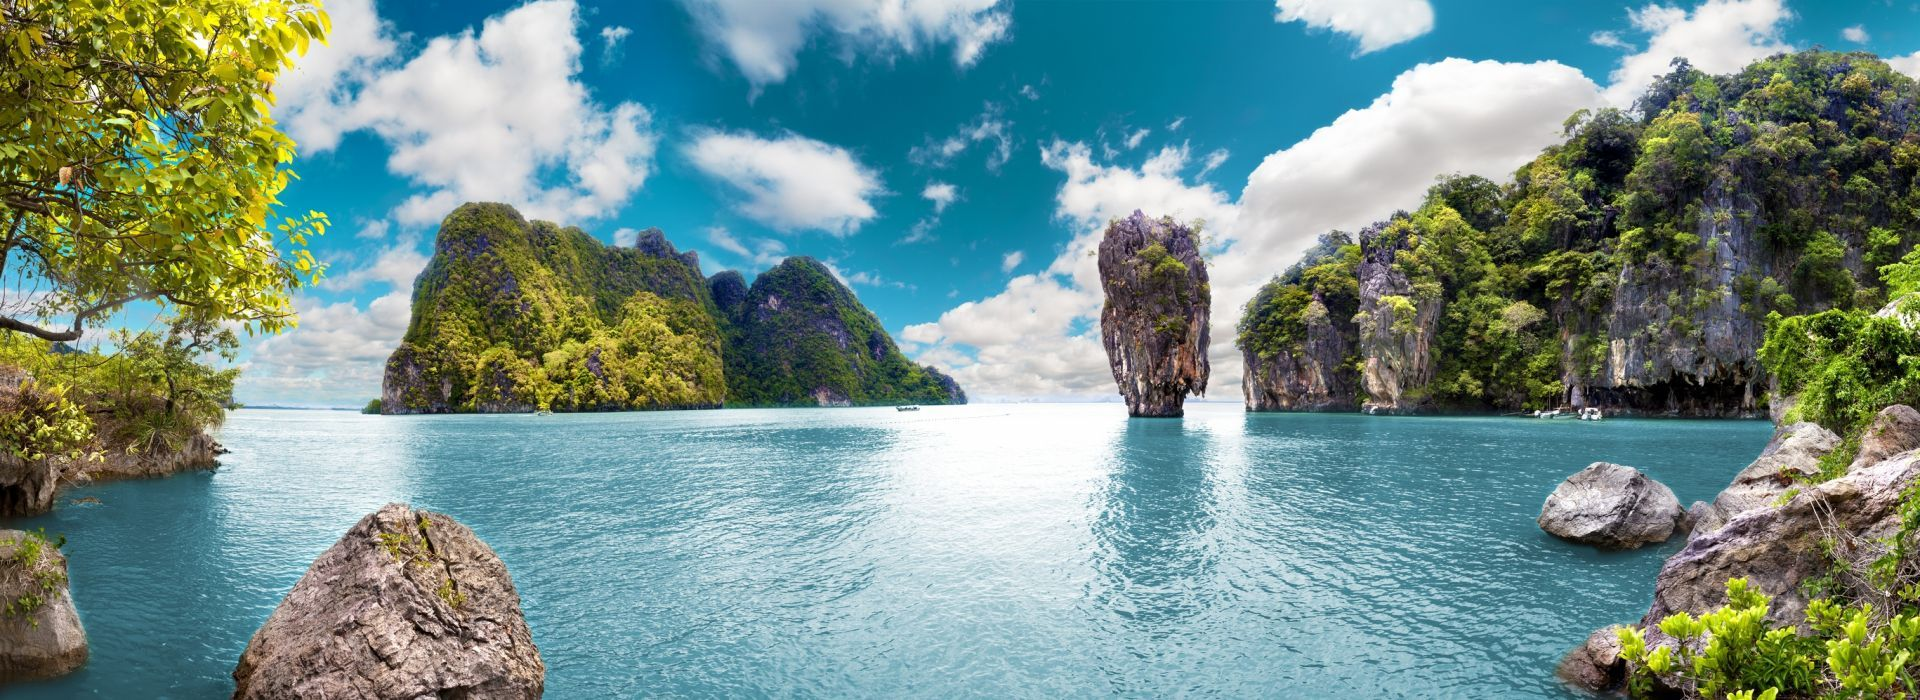 National parks Tours in Krabi